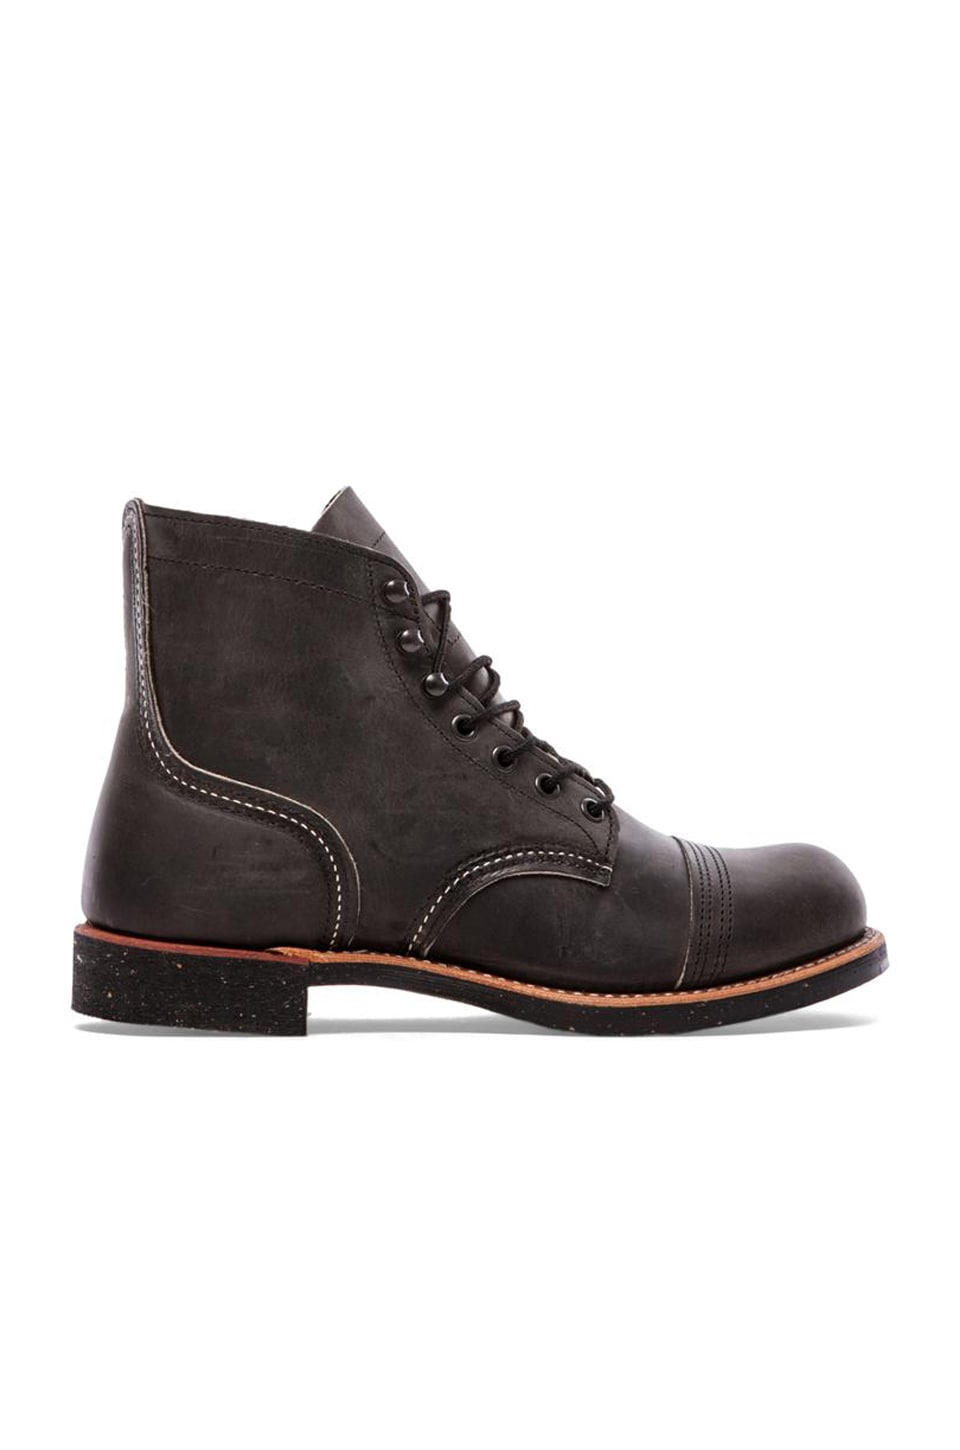 Red Wing Shoes Iron Ranger in Charcoal Rough